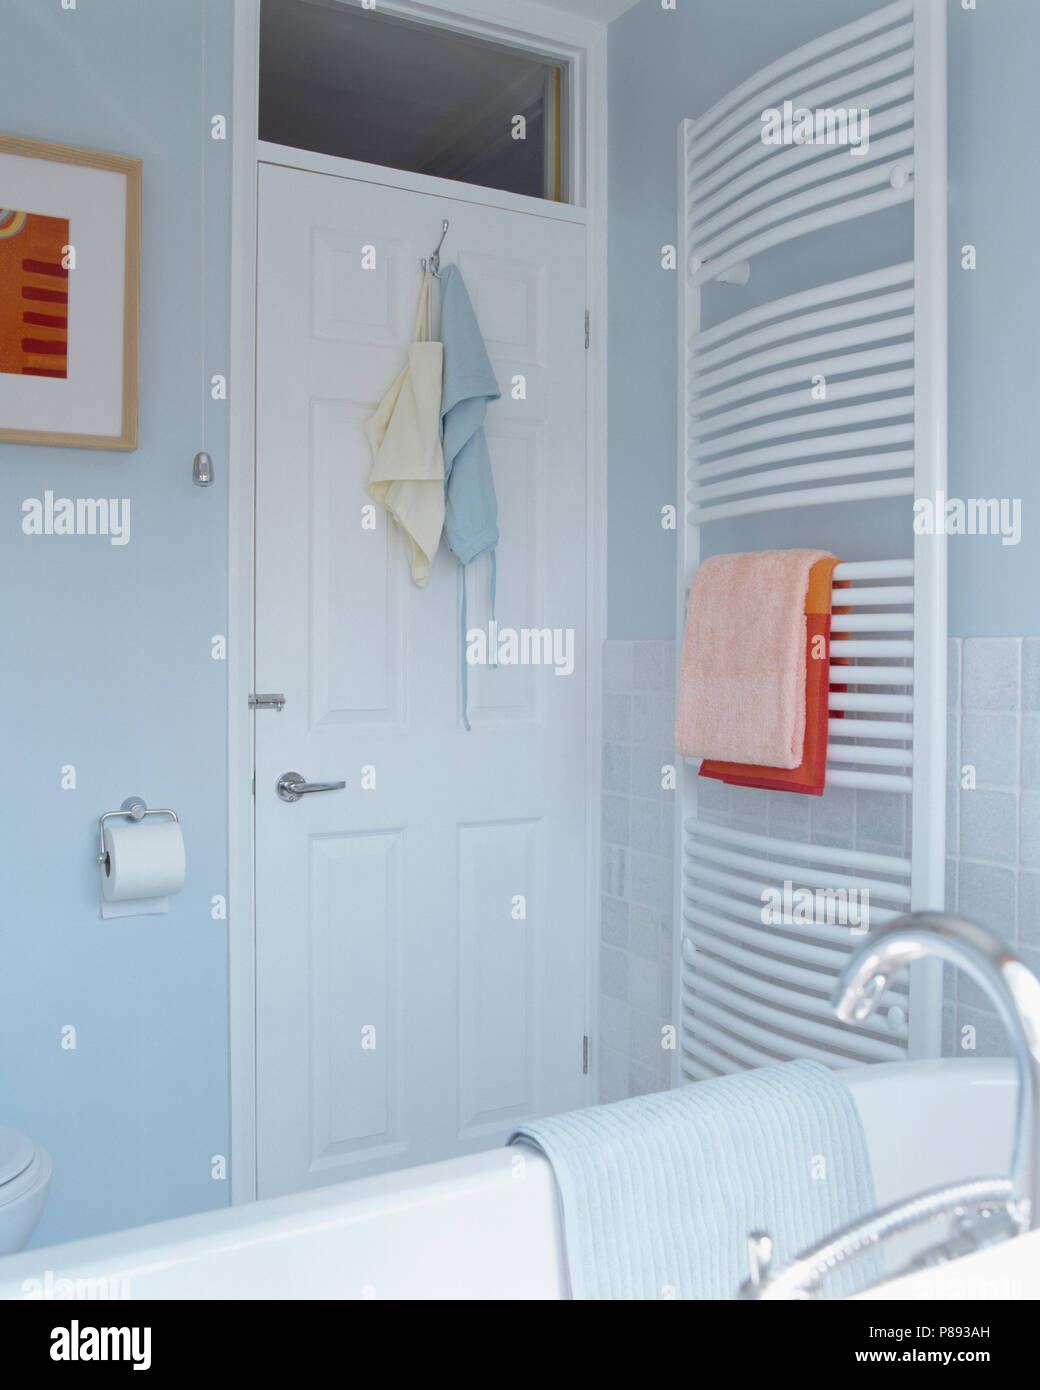 White Towel Rail On Wall Beside Door In Corner Of Modern Pastel Blue Bathroom